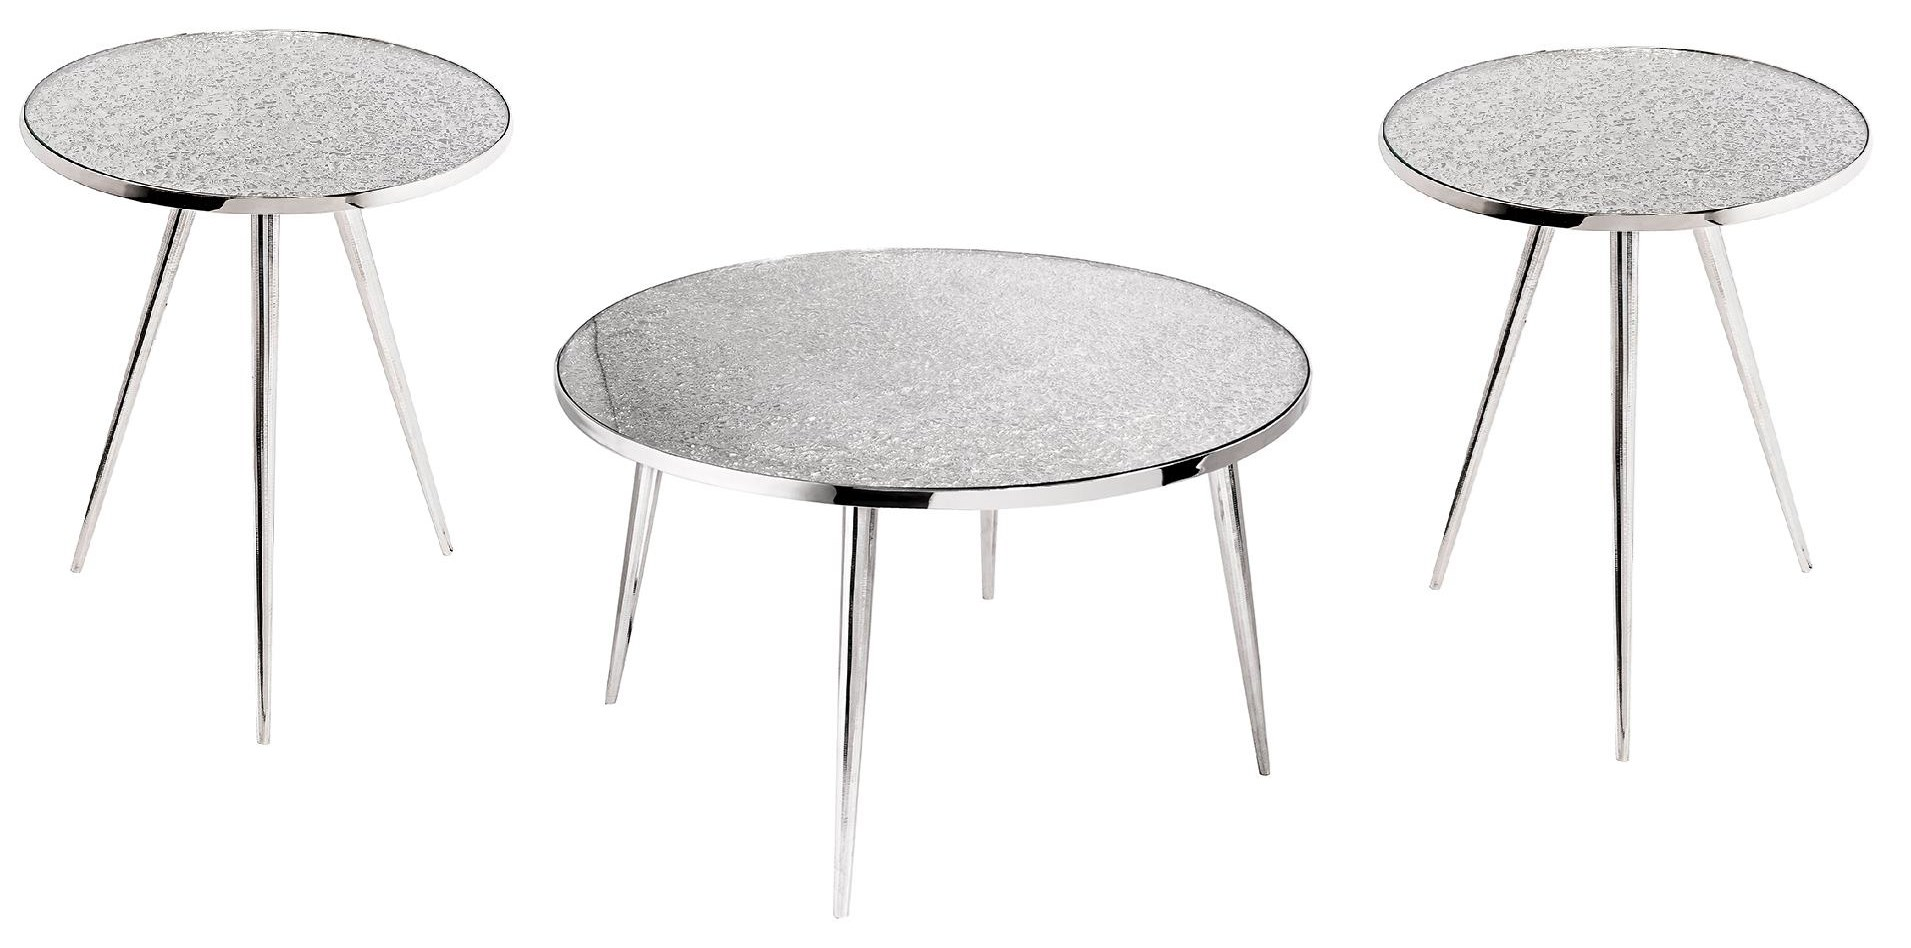 Aries Coffee Table & 2 End Tables at Bennett's Furniture and Mattresses